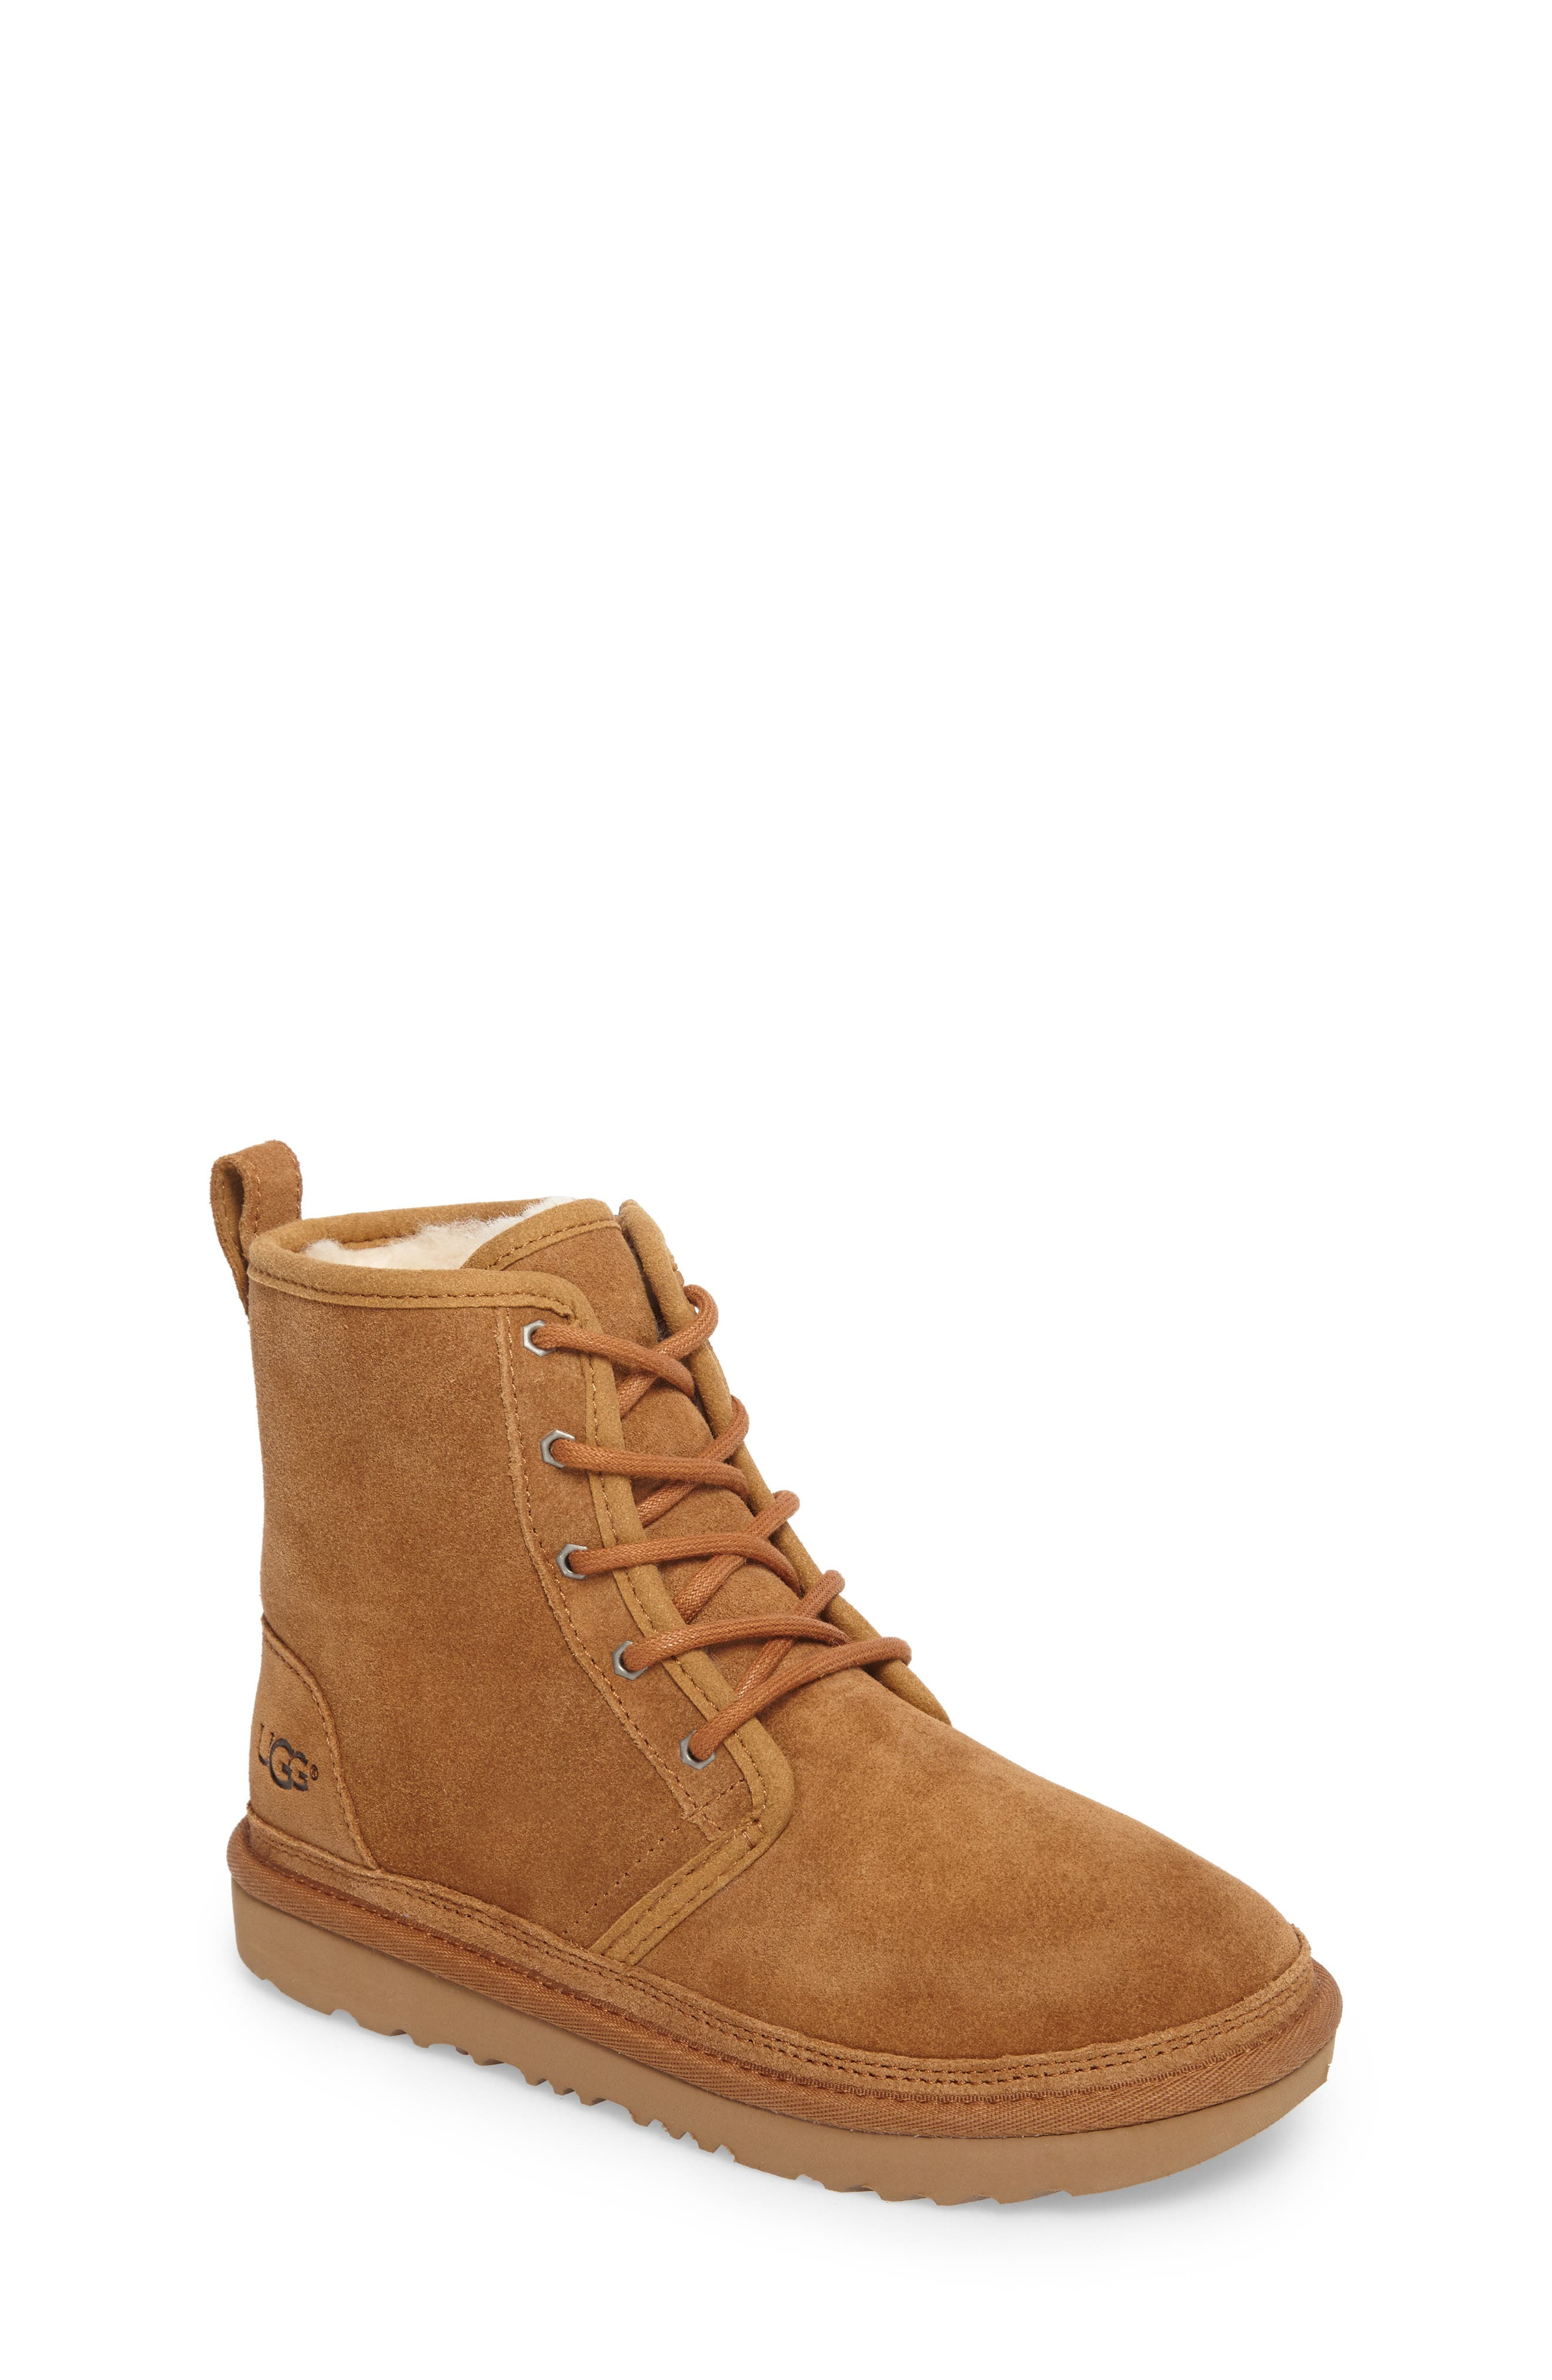 Harkley Lace-Up Boot,                         Main,                         color, Chestnut